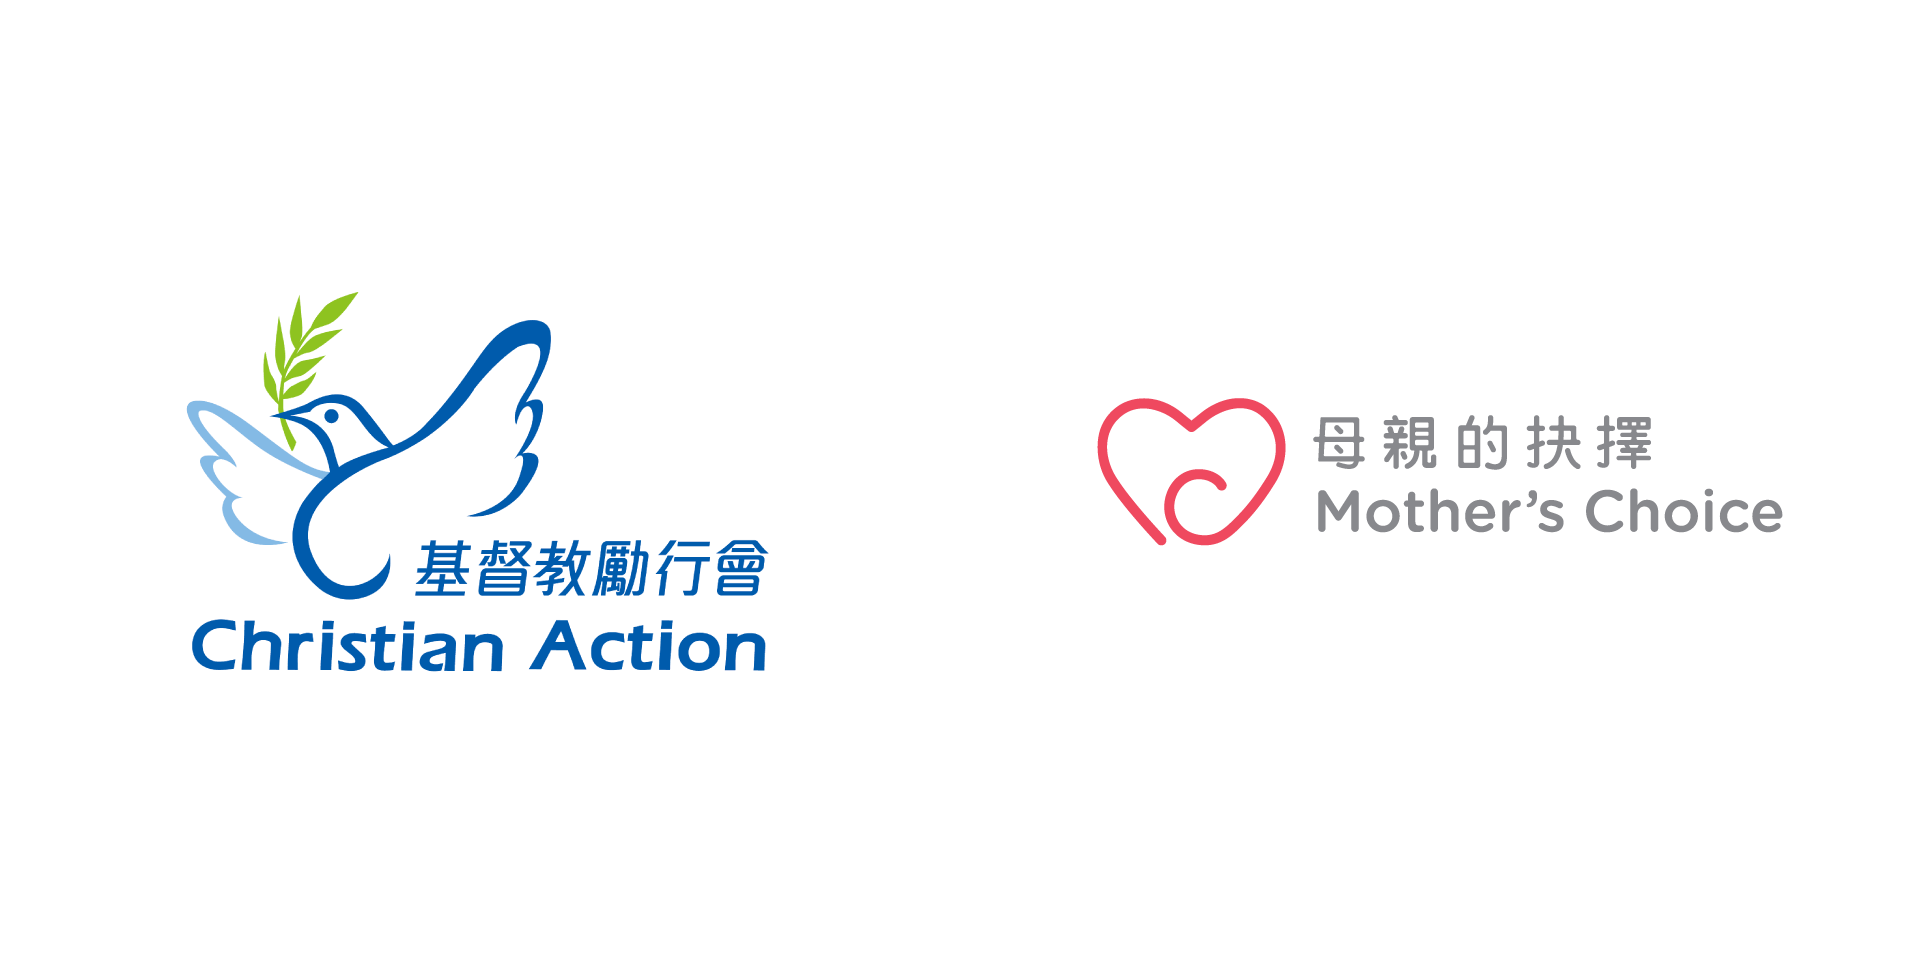 Christian Action | Mother's Choice